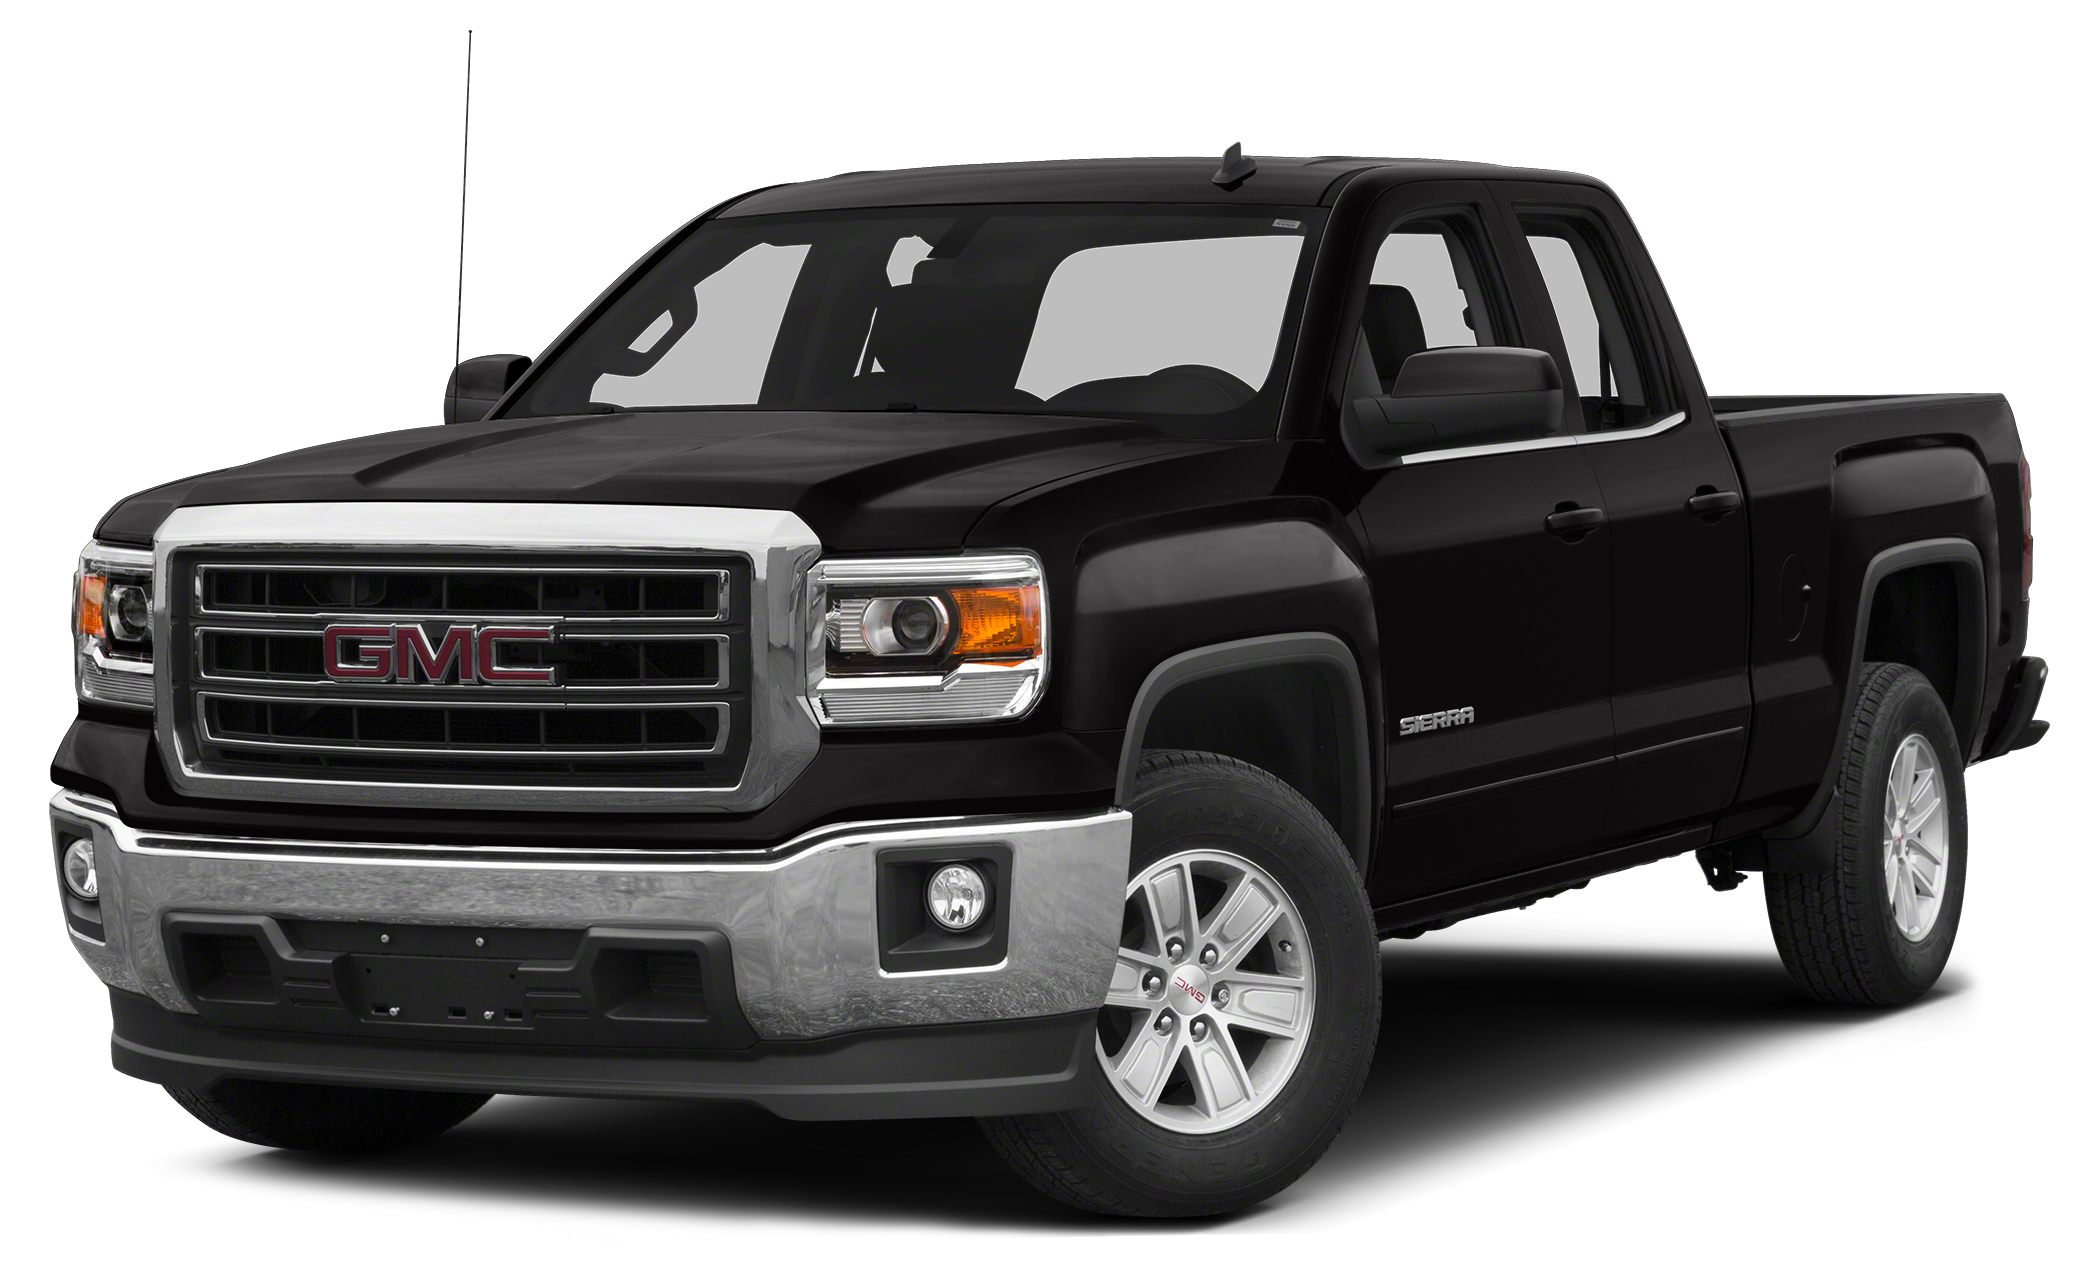 2015 GMC Sierra 1500 Base GREAT MILES 32836 Sierra 1500 trim FUEL EFFICIENT 24 MPG Hwy18 MPG C